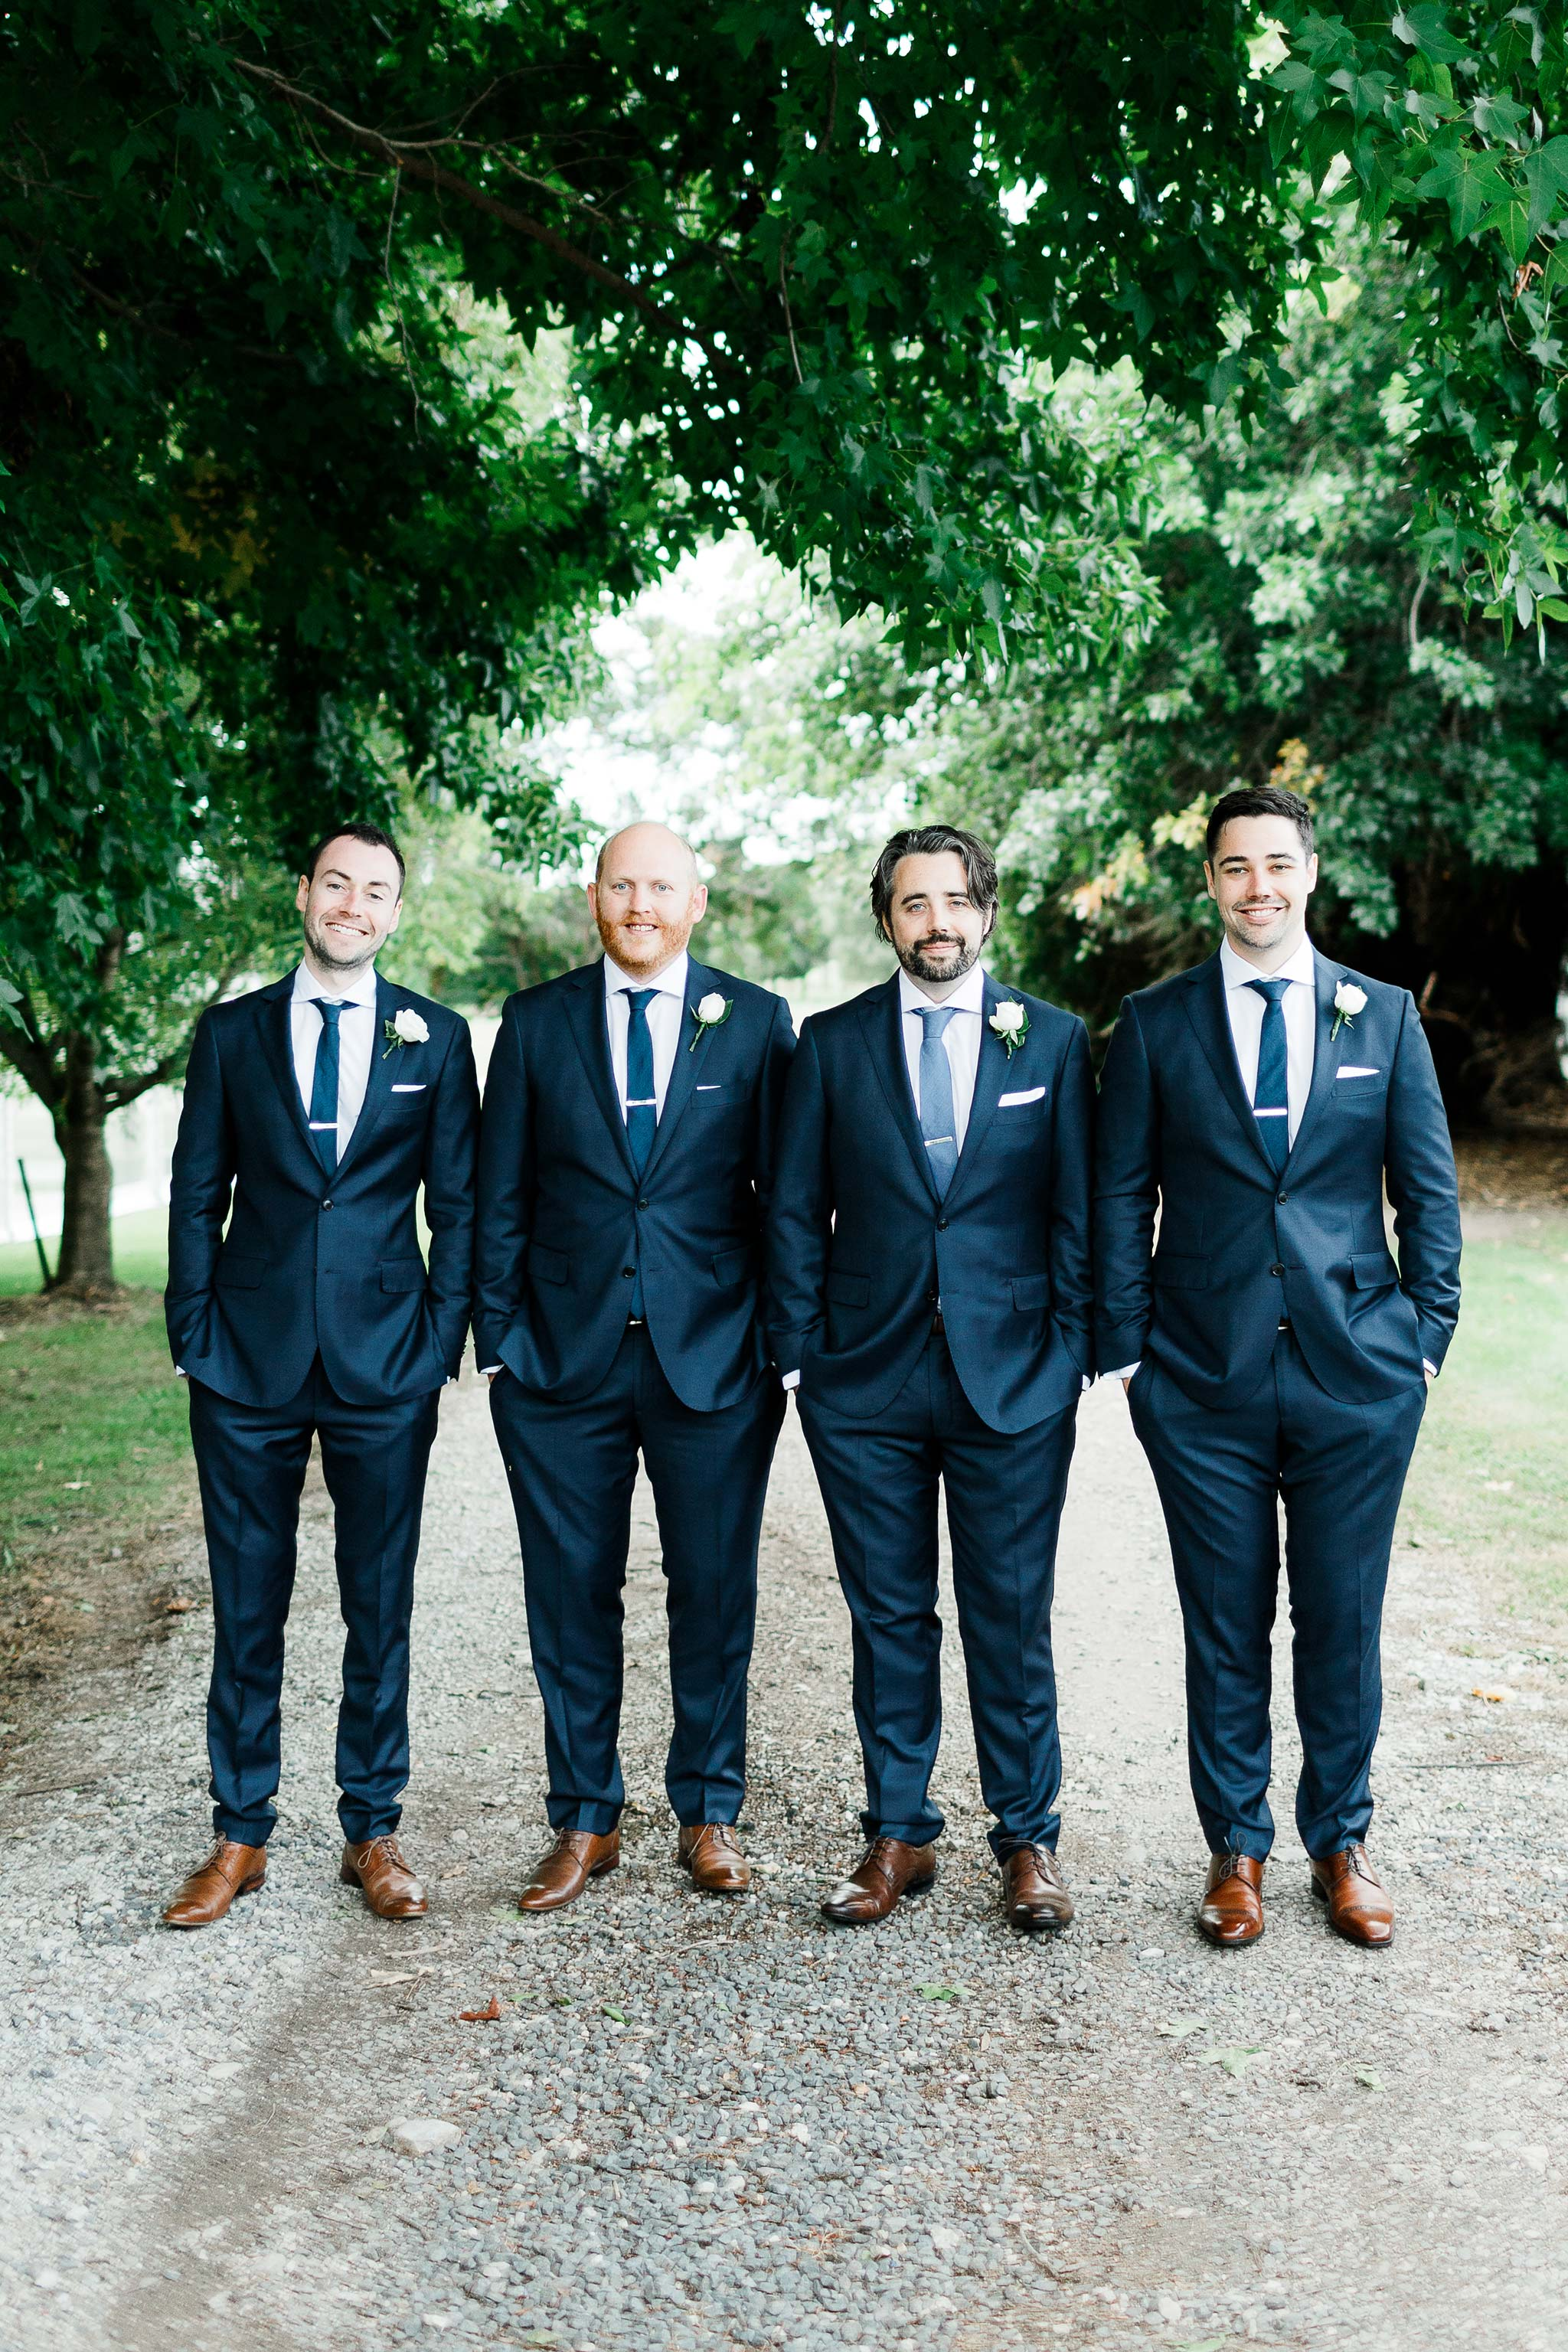 Tasmania-Davenport-Farm-Wedding-groomsmen